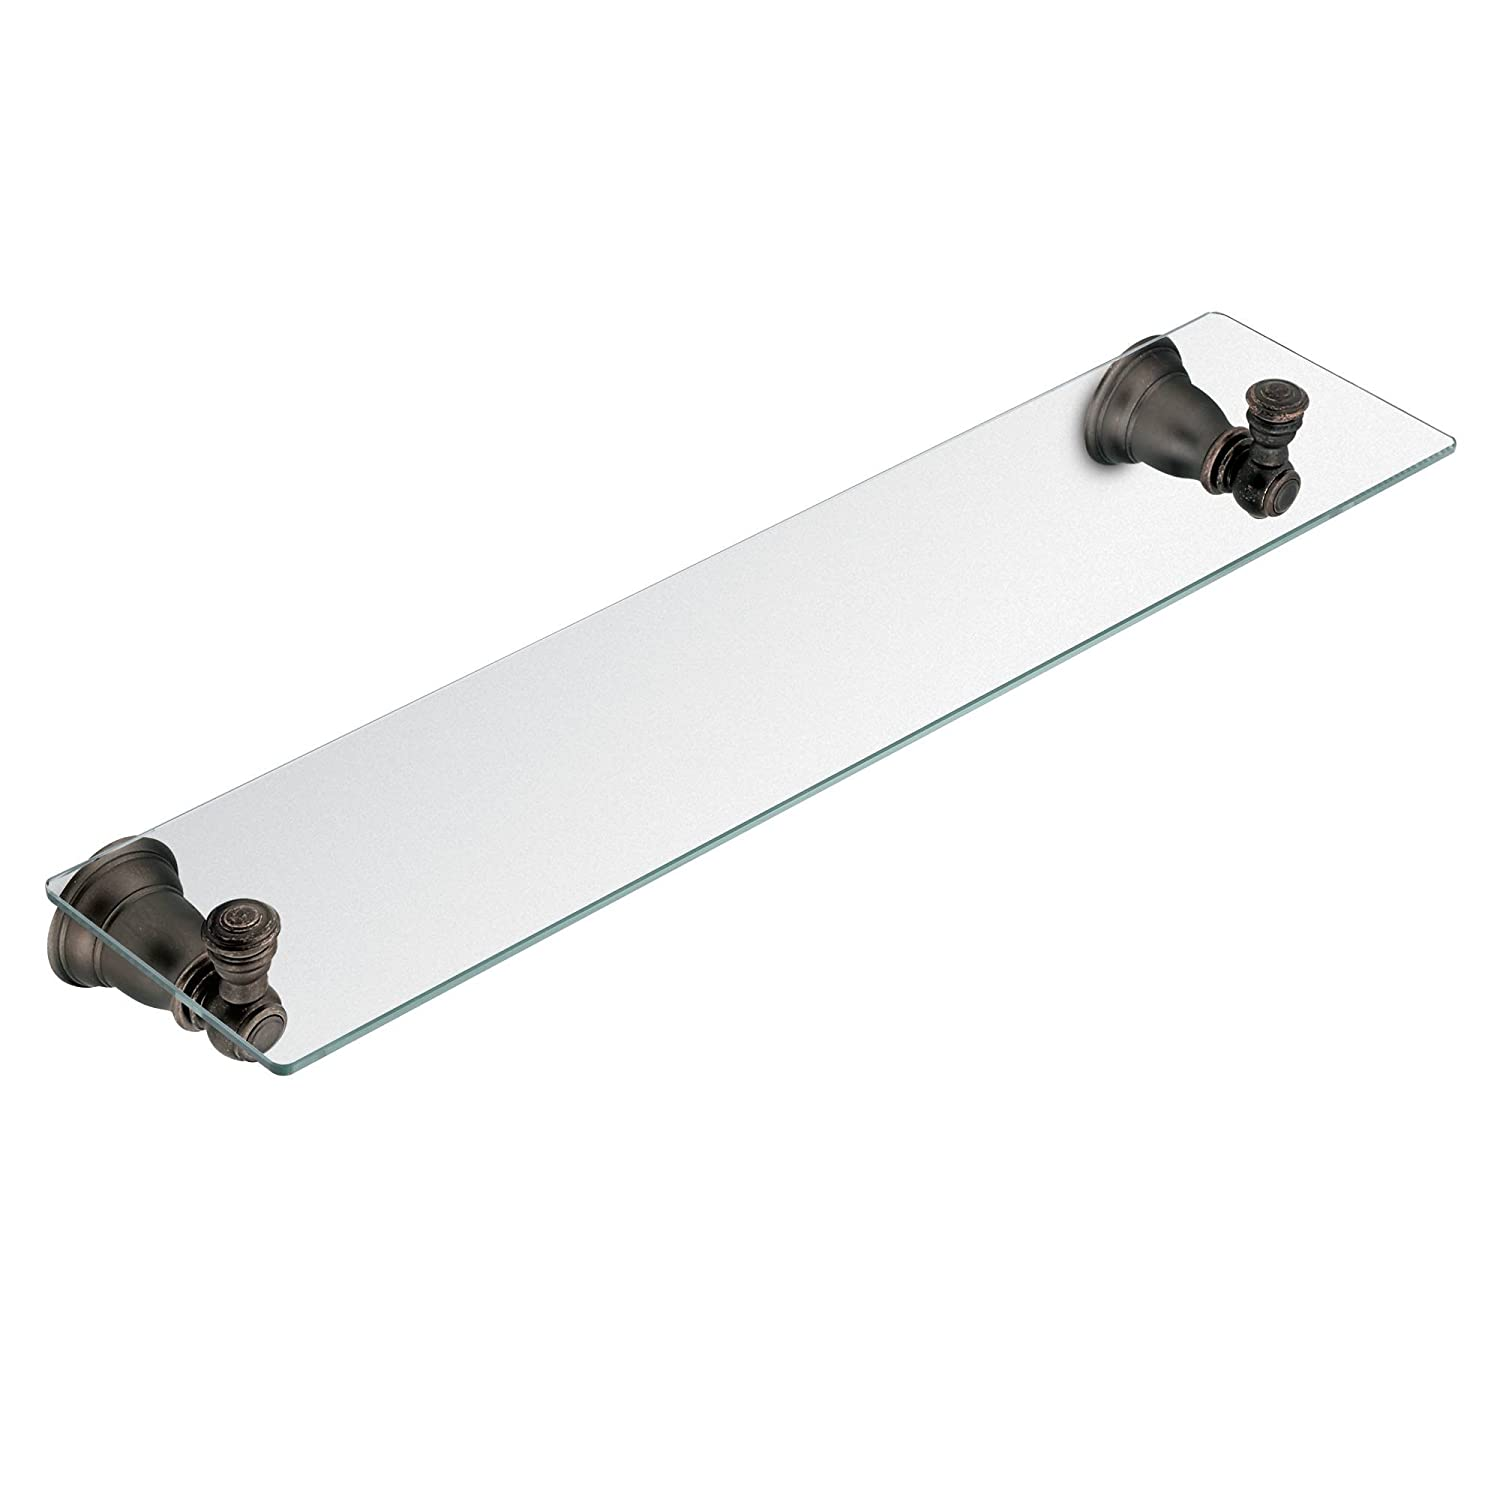 Moen YB5490ORB Kingsley Vanity Shelf, Oil Rubbed Bronze - Mounted ...